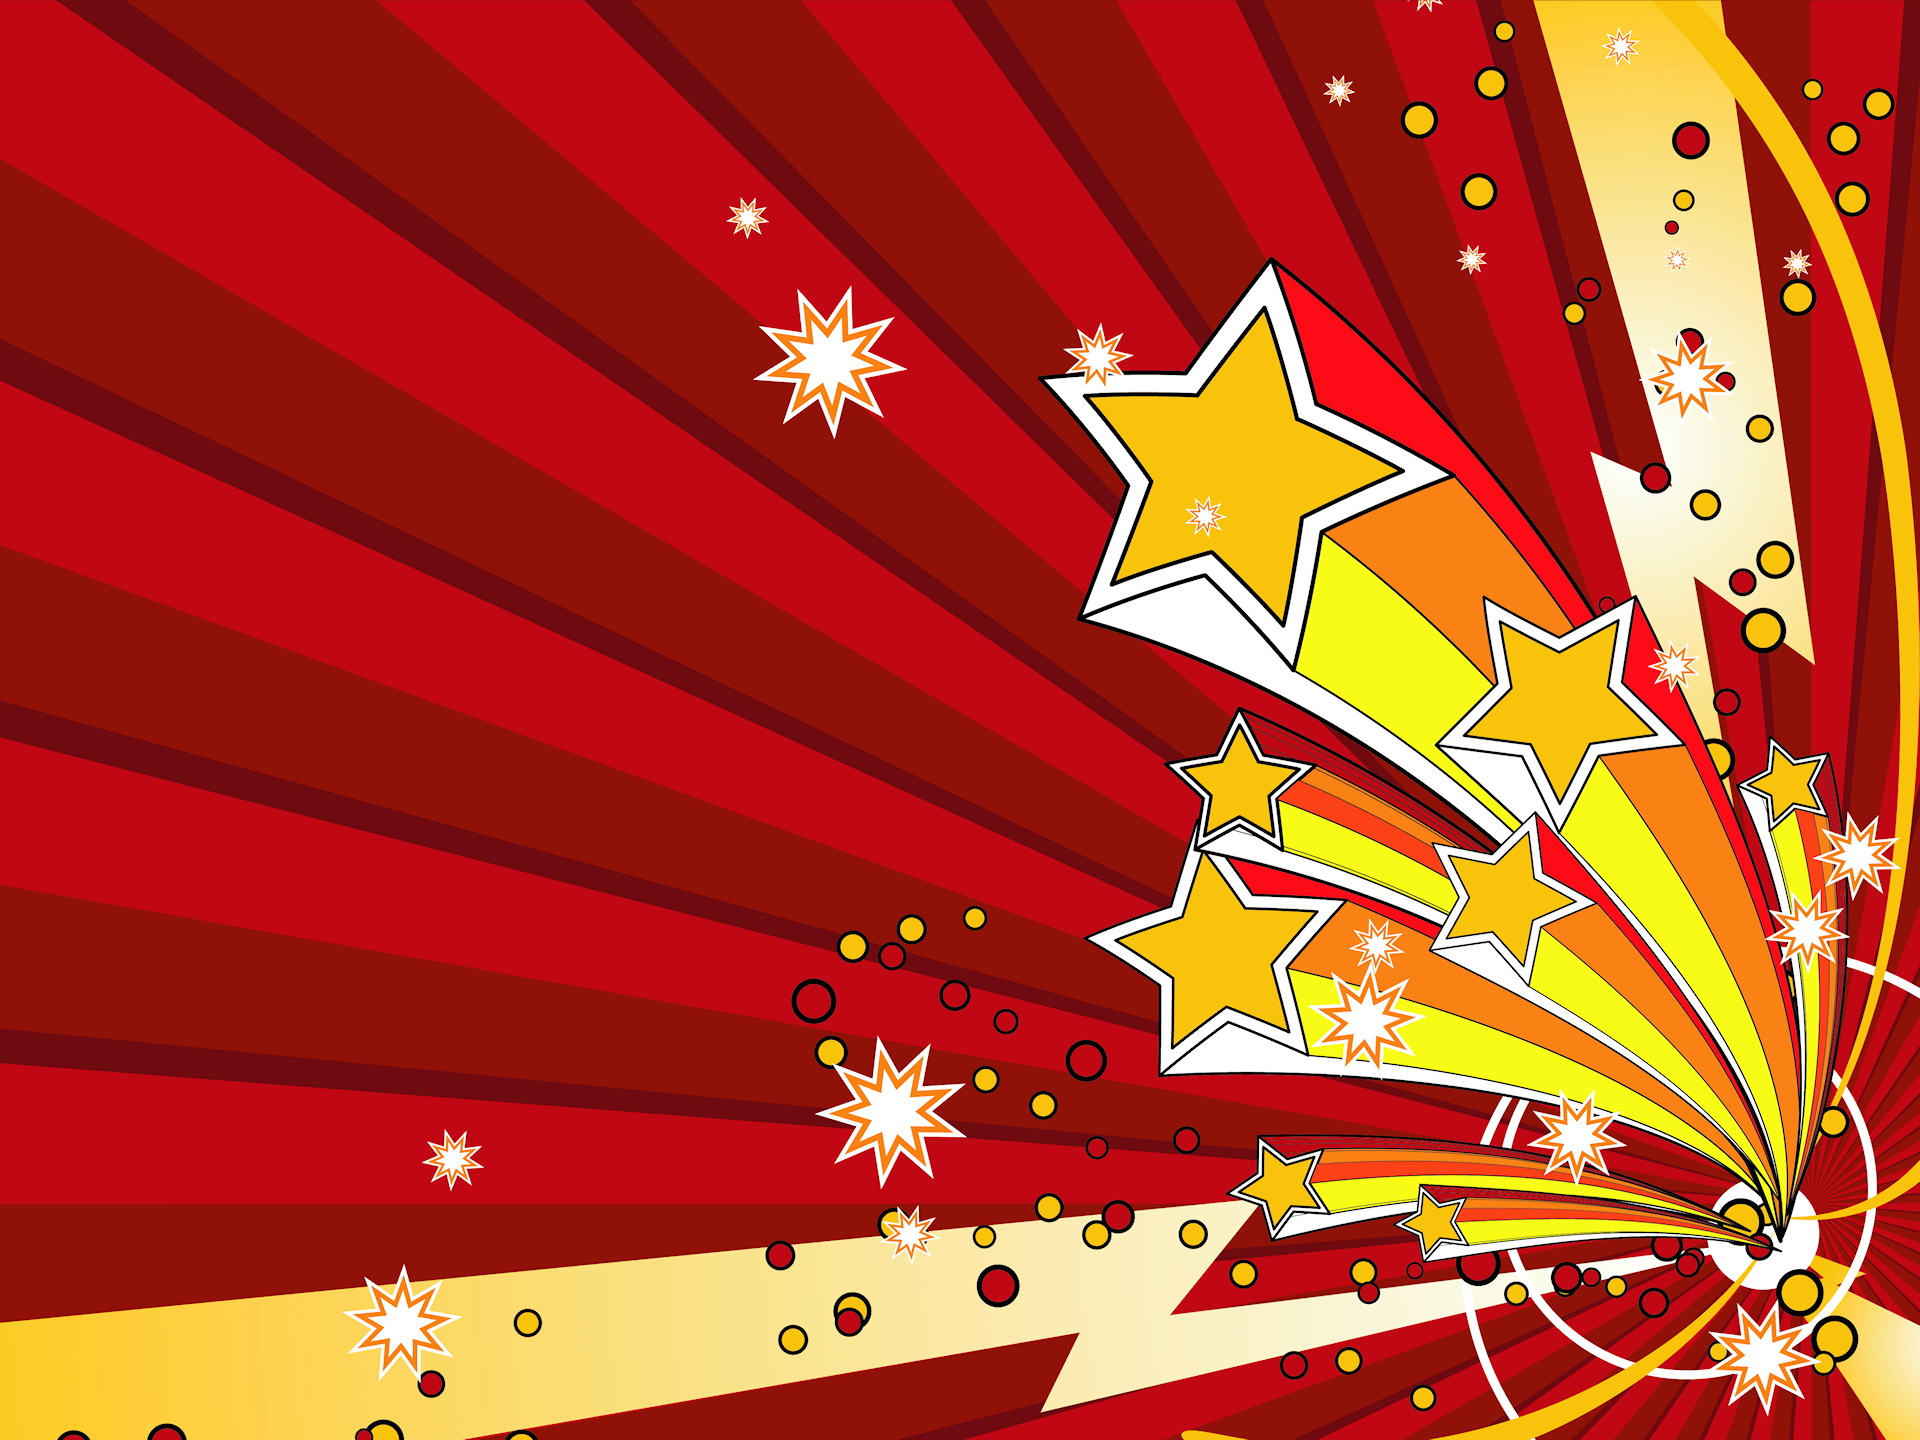 red star wallpaper 3d - photo #31